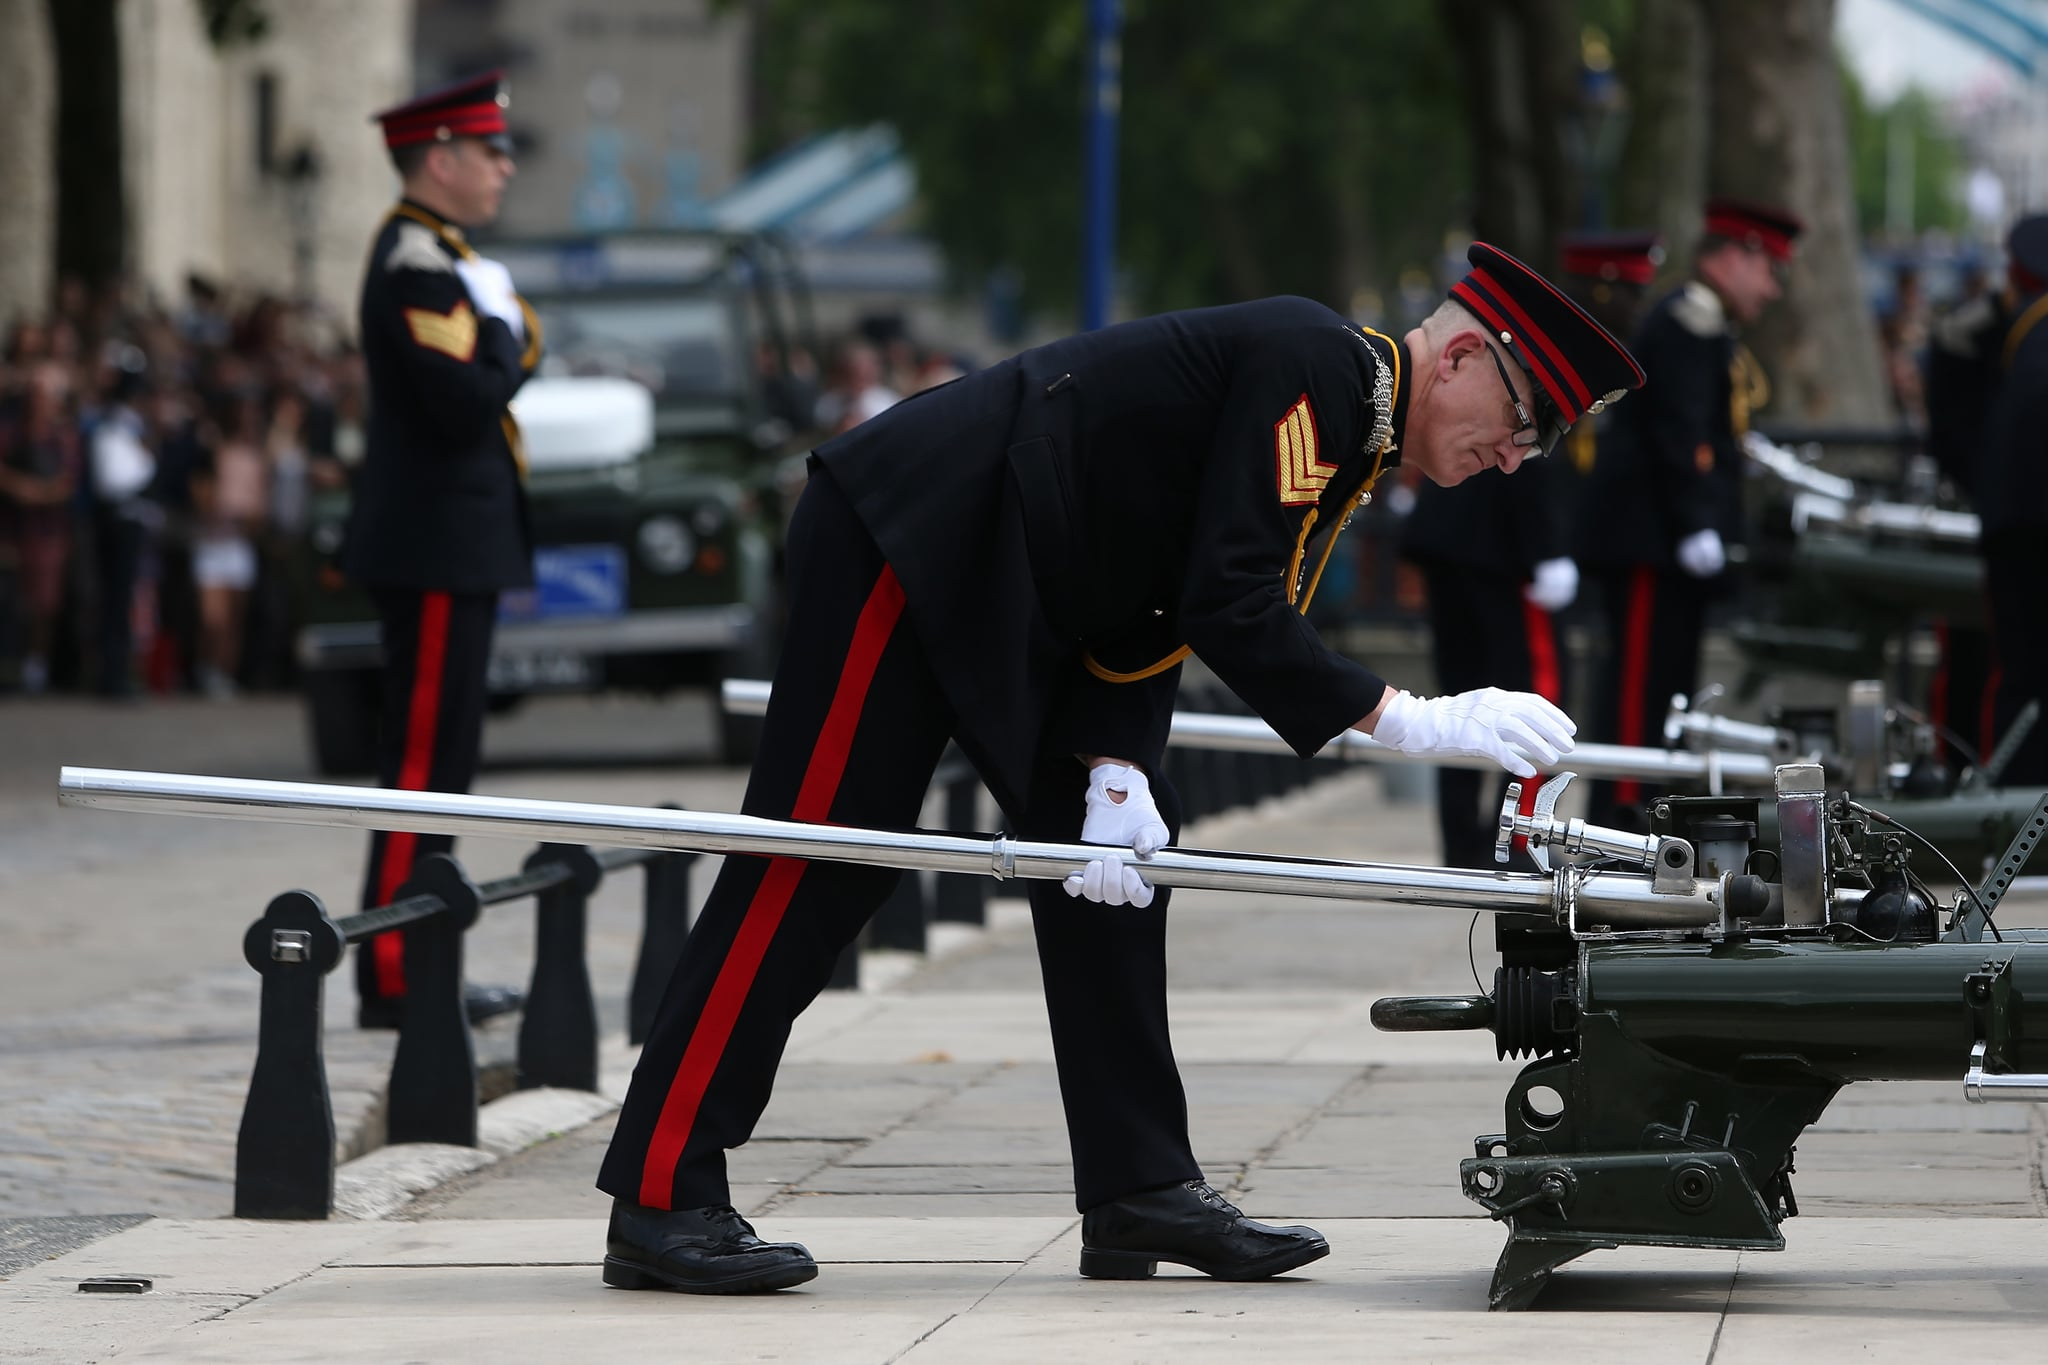 Outside the Tower of London, the Honourable Artillery Company prepared for a 62-round gun salute.